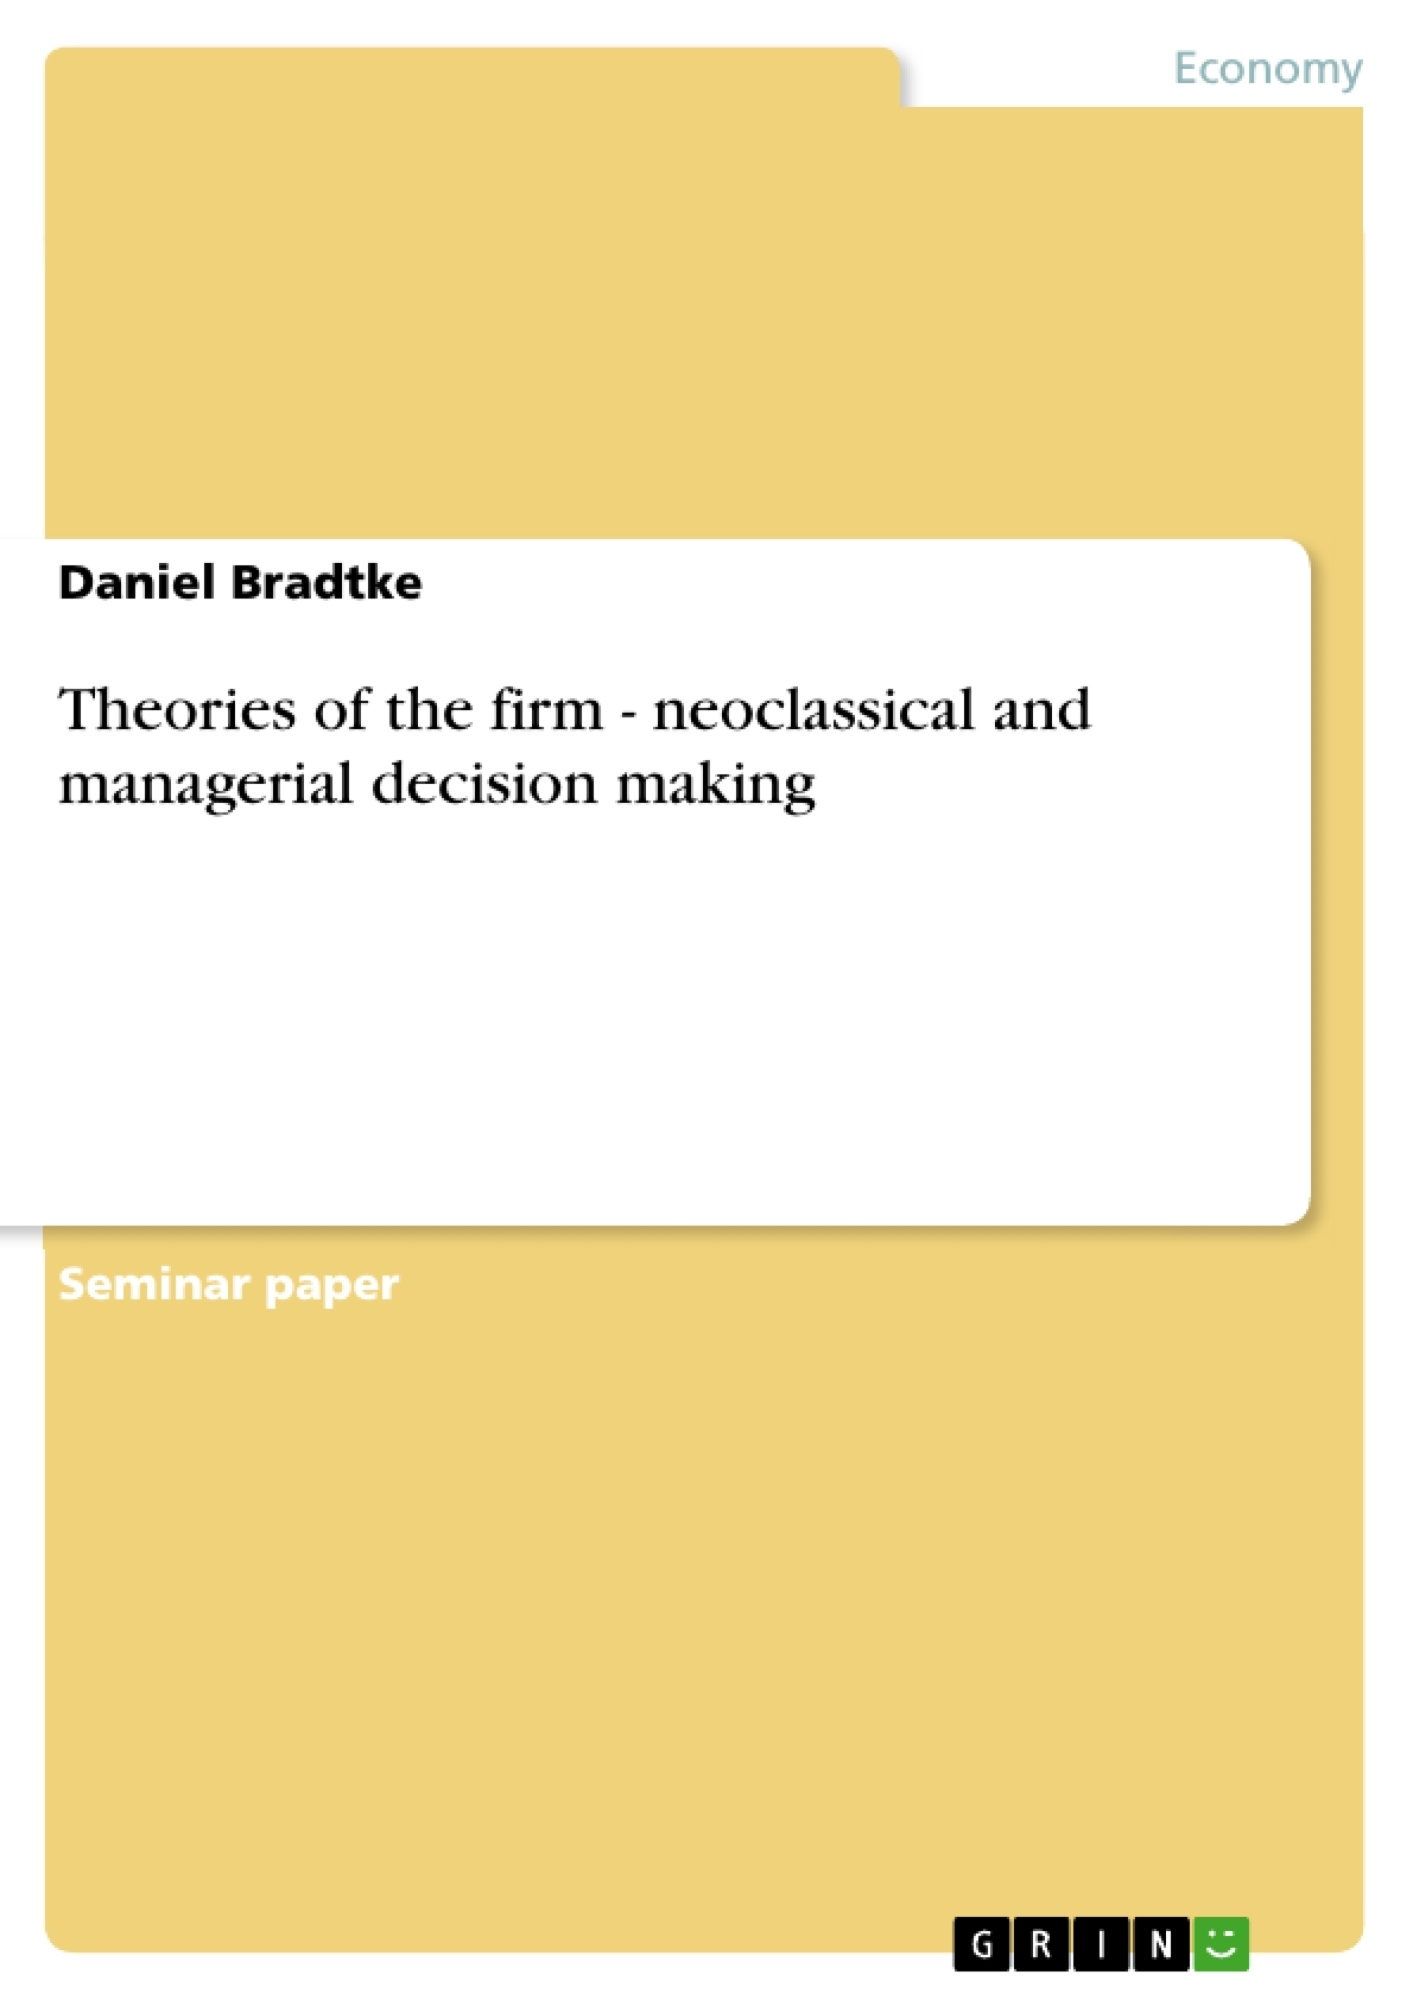 Title: Theories of the firm - neoclassical and managerial decision making